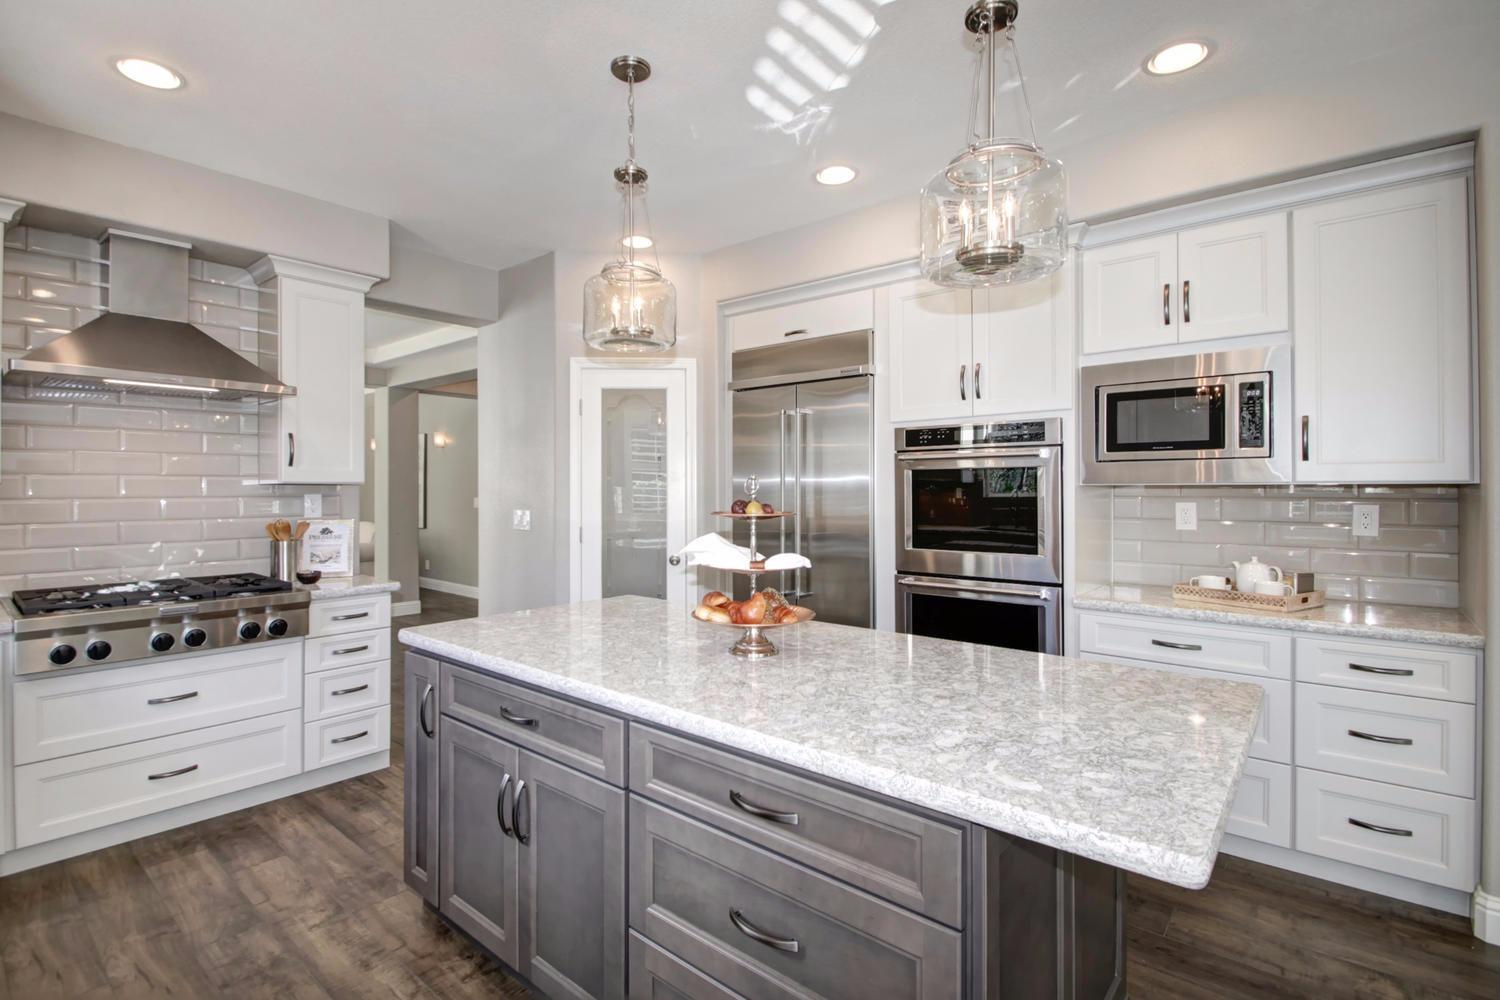 Kitchen island and range, grey and white cabinets and white counters